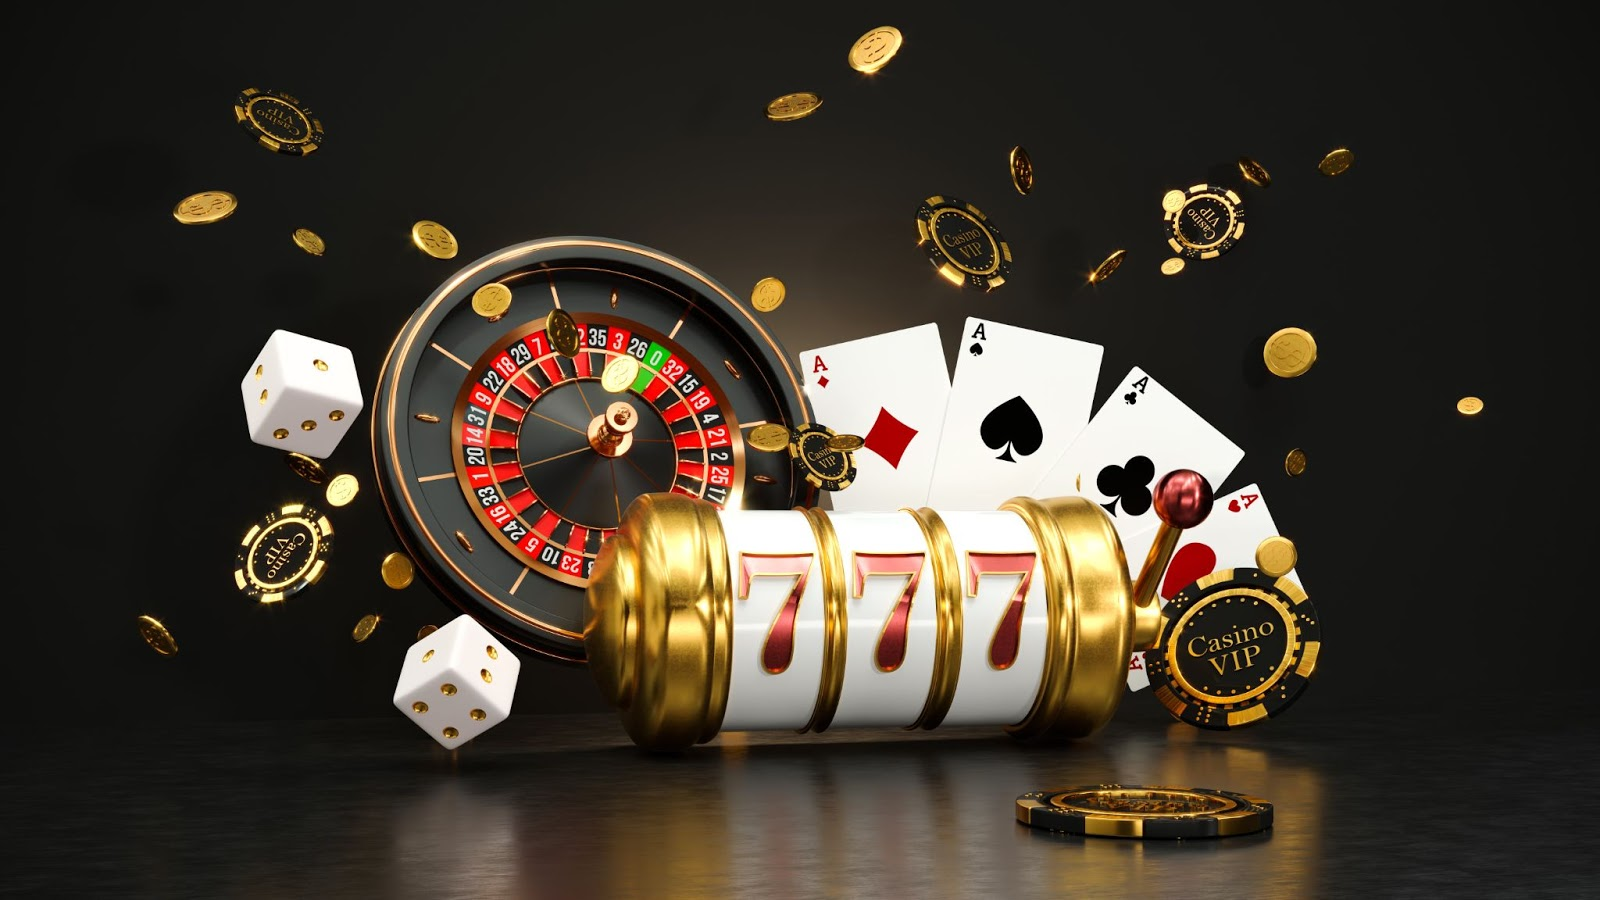 Why Do Online Casinos Give Out So Much Free Money? - Business Telegraph